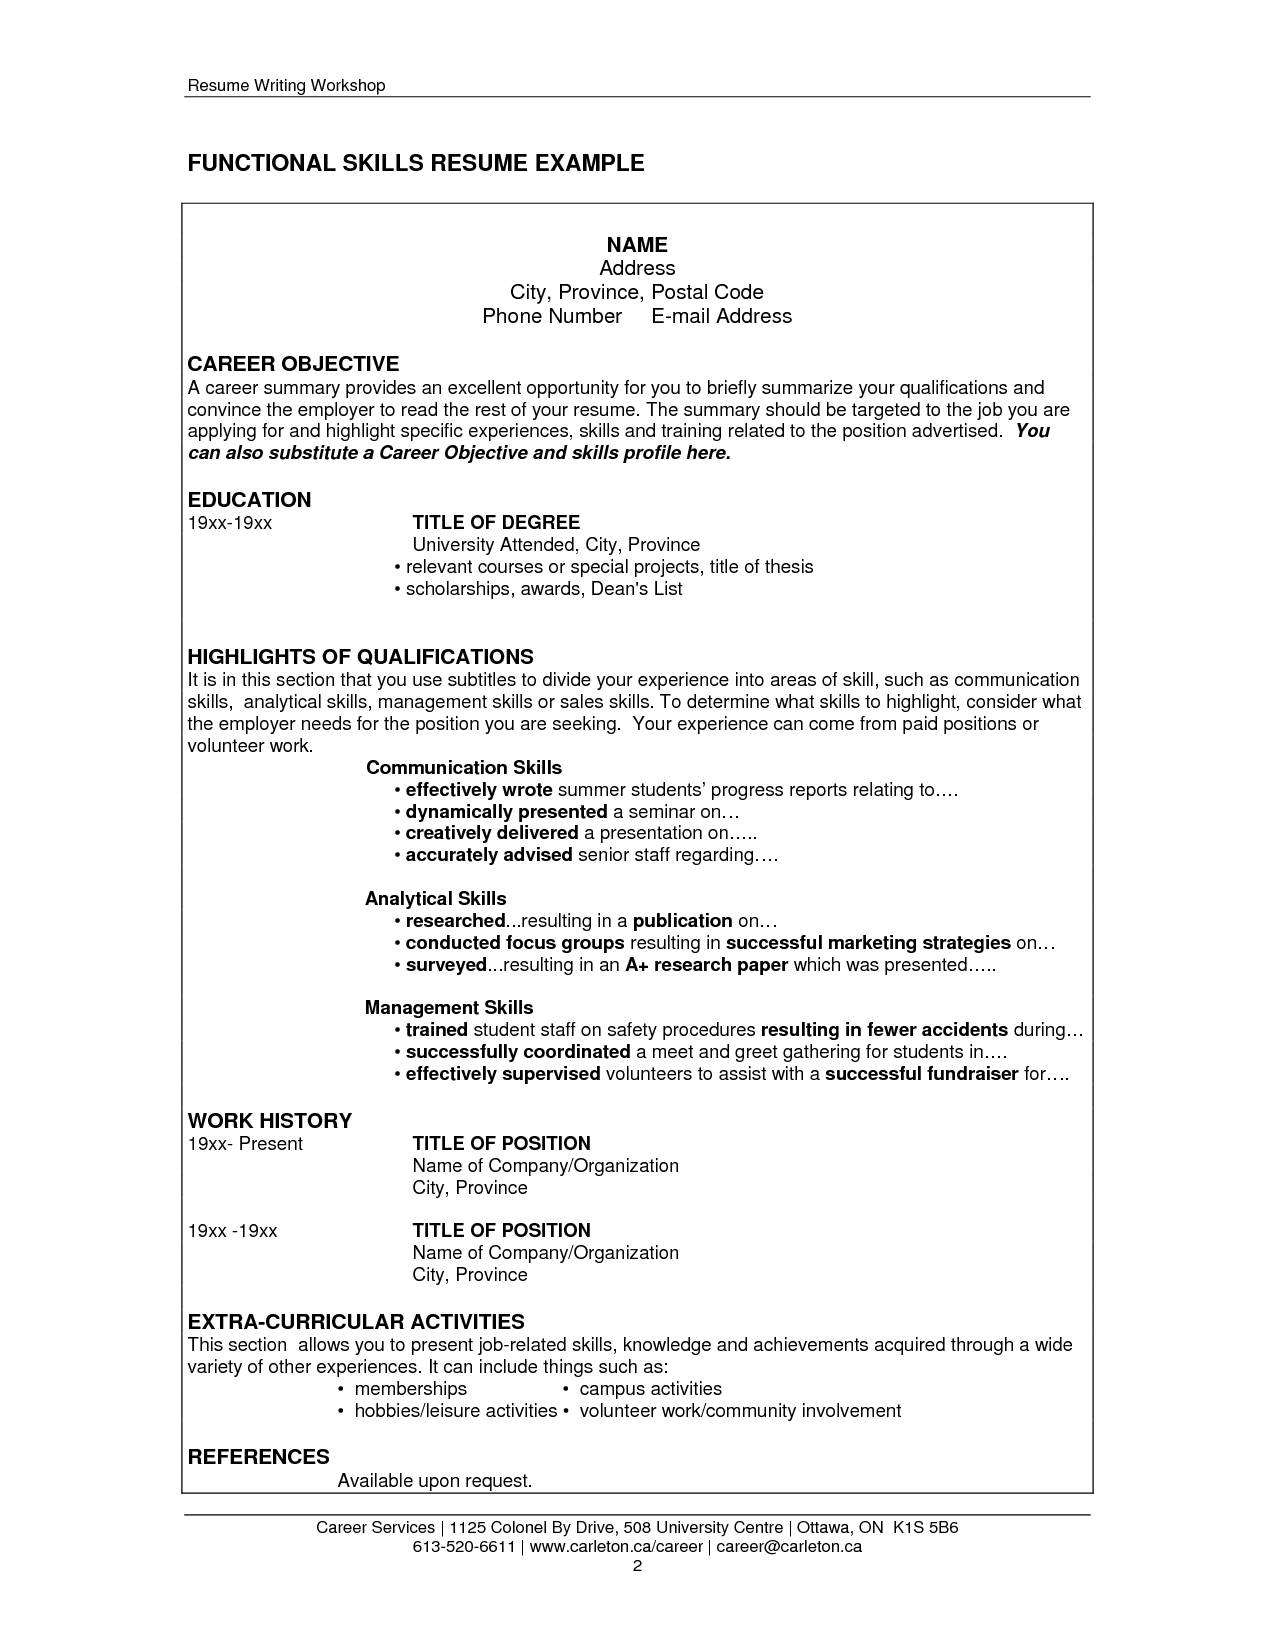 profile resume sample cover letter chief executive officer examples skills professional skill example